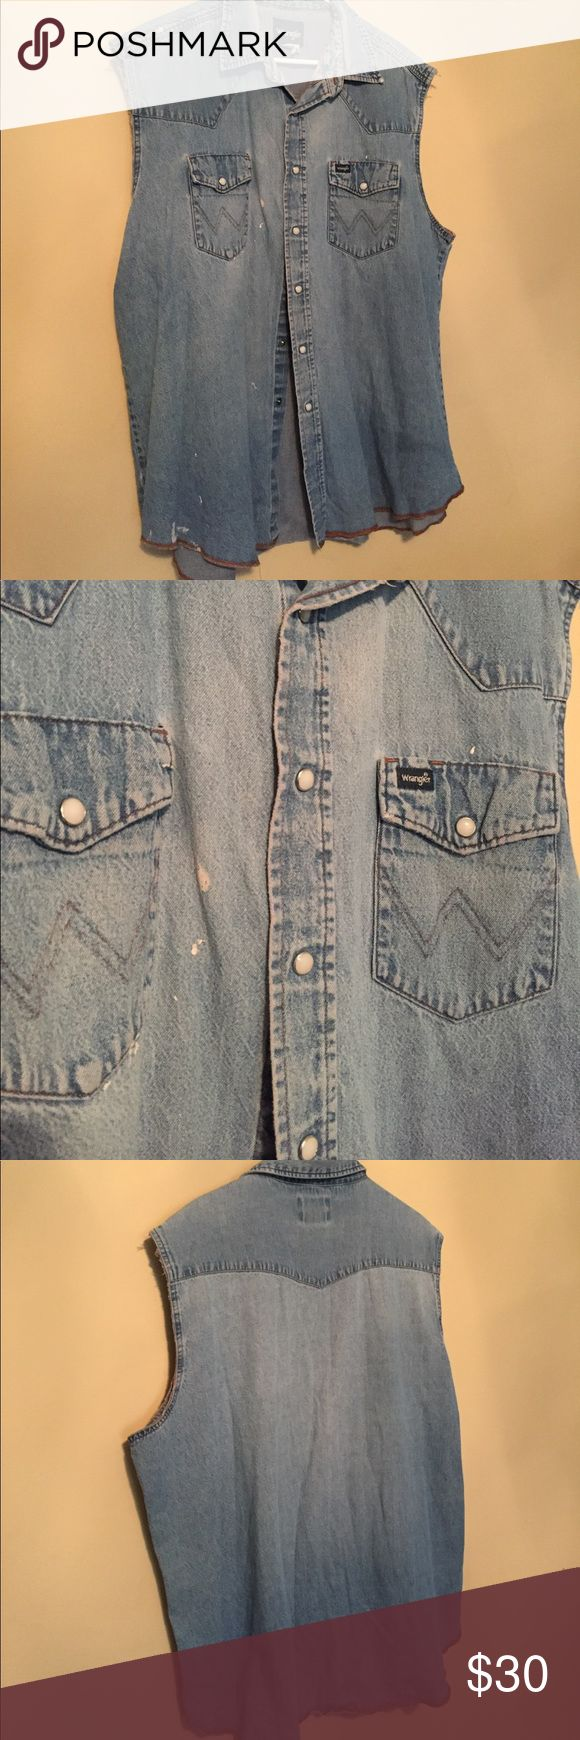 Vintage wrangler denim shirt Vintage wrangler. Paint spots throughout shirt. Wrangler Shirts Tank Tops